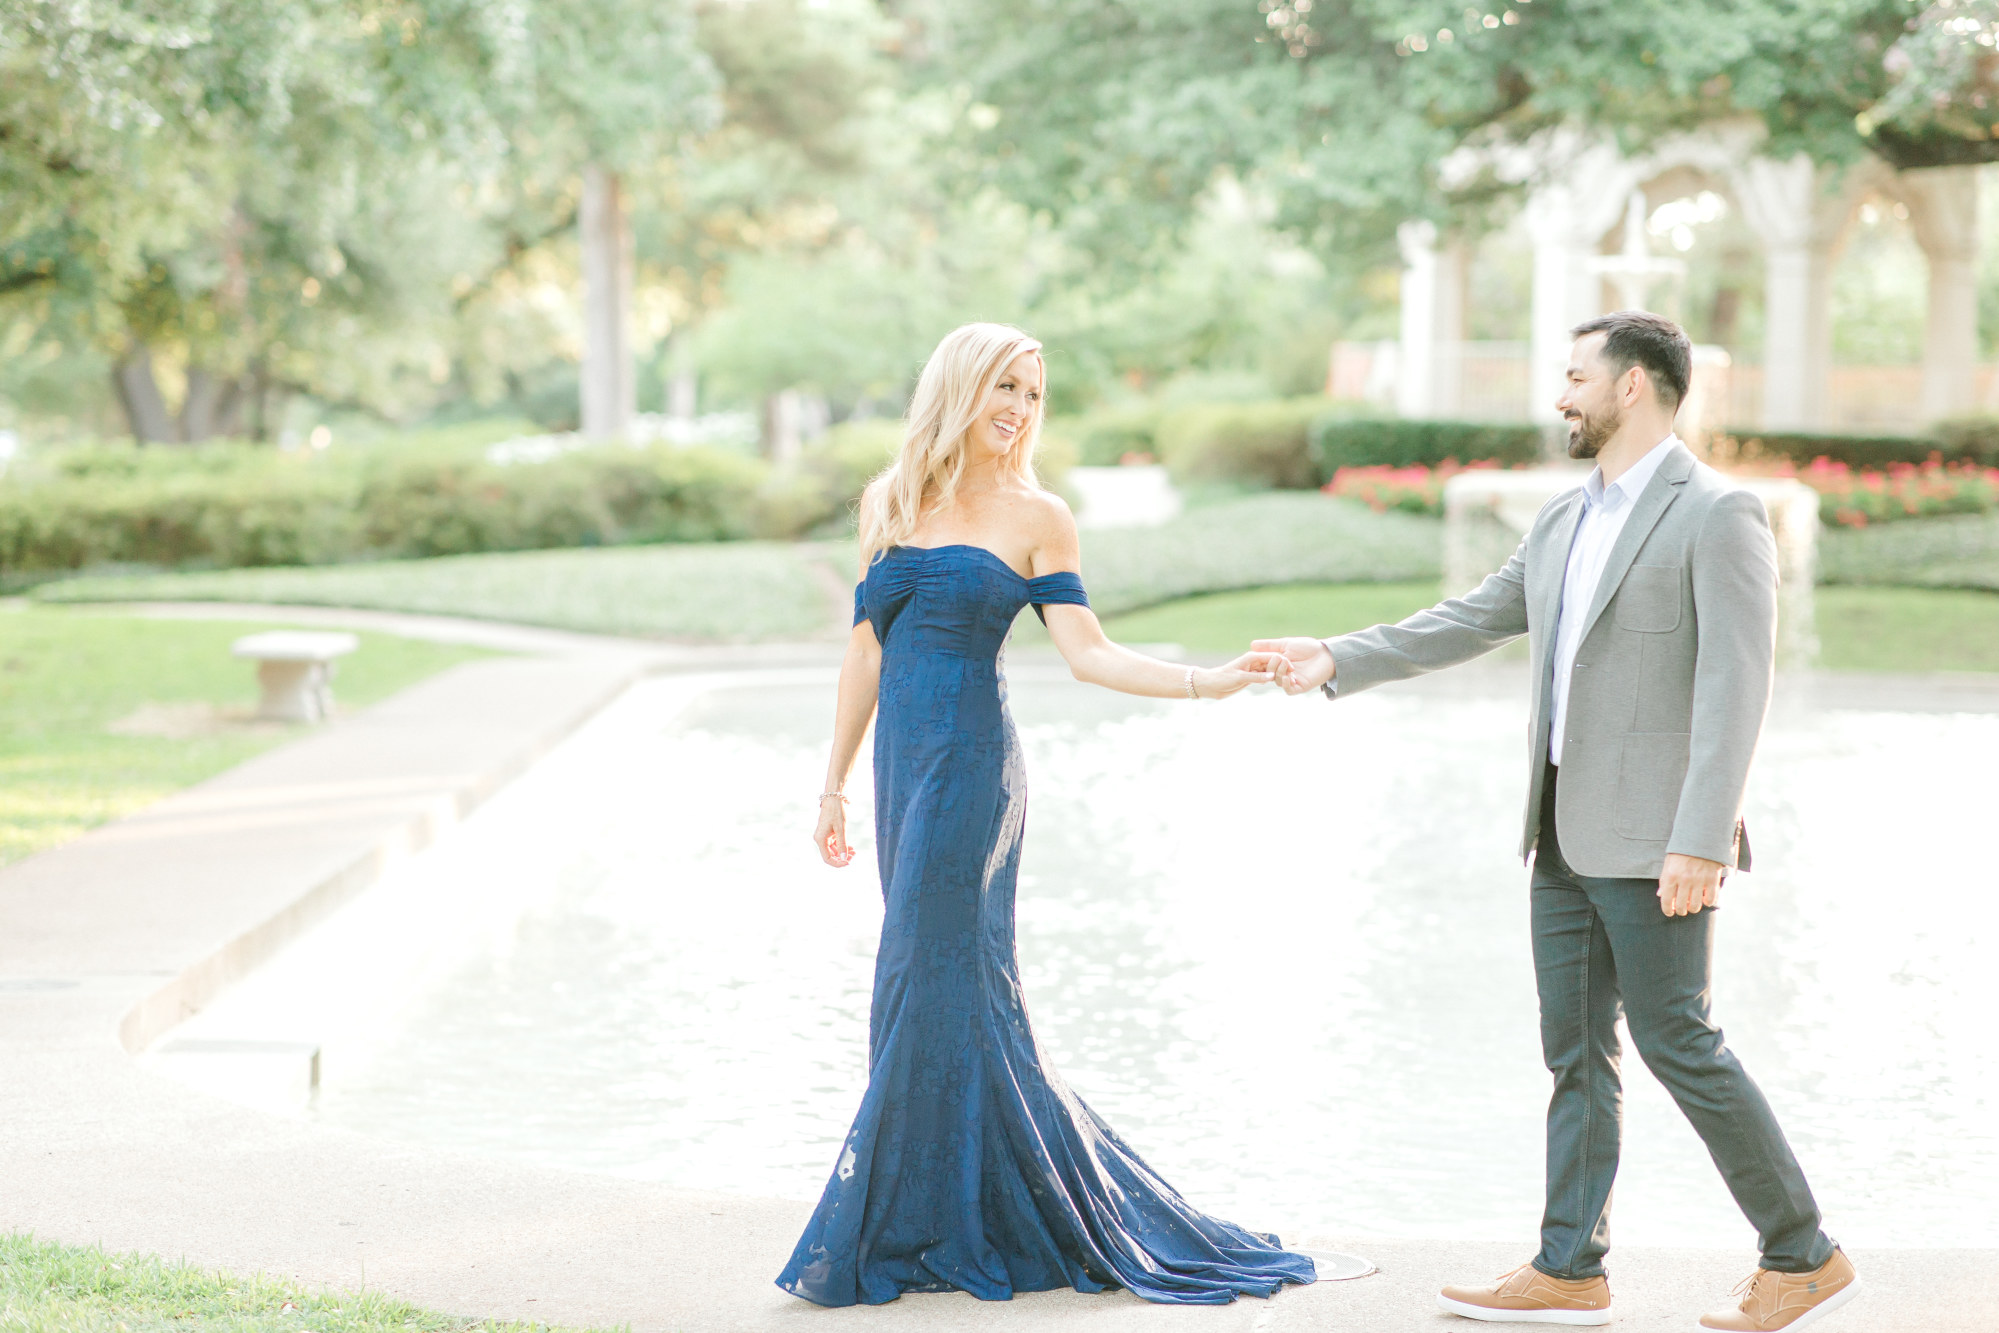 Hannah Way Photography, Dallas wedding photographer, engagement photos, dfw engagements, engaged, Dallas engagement session, wedding photographer, luxury wedding photographer, luxury engagement session, highland park, Prather park, dallas